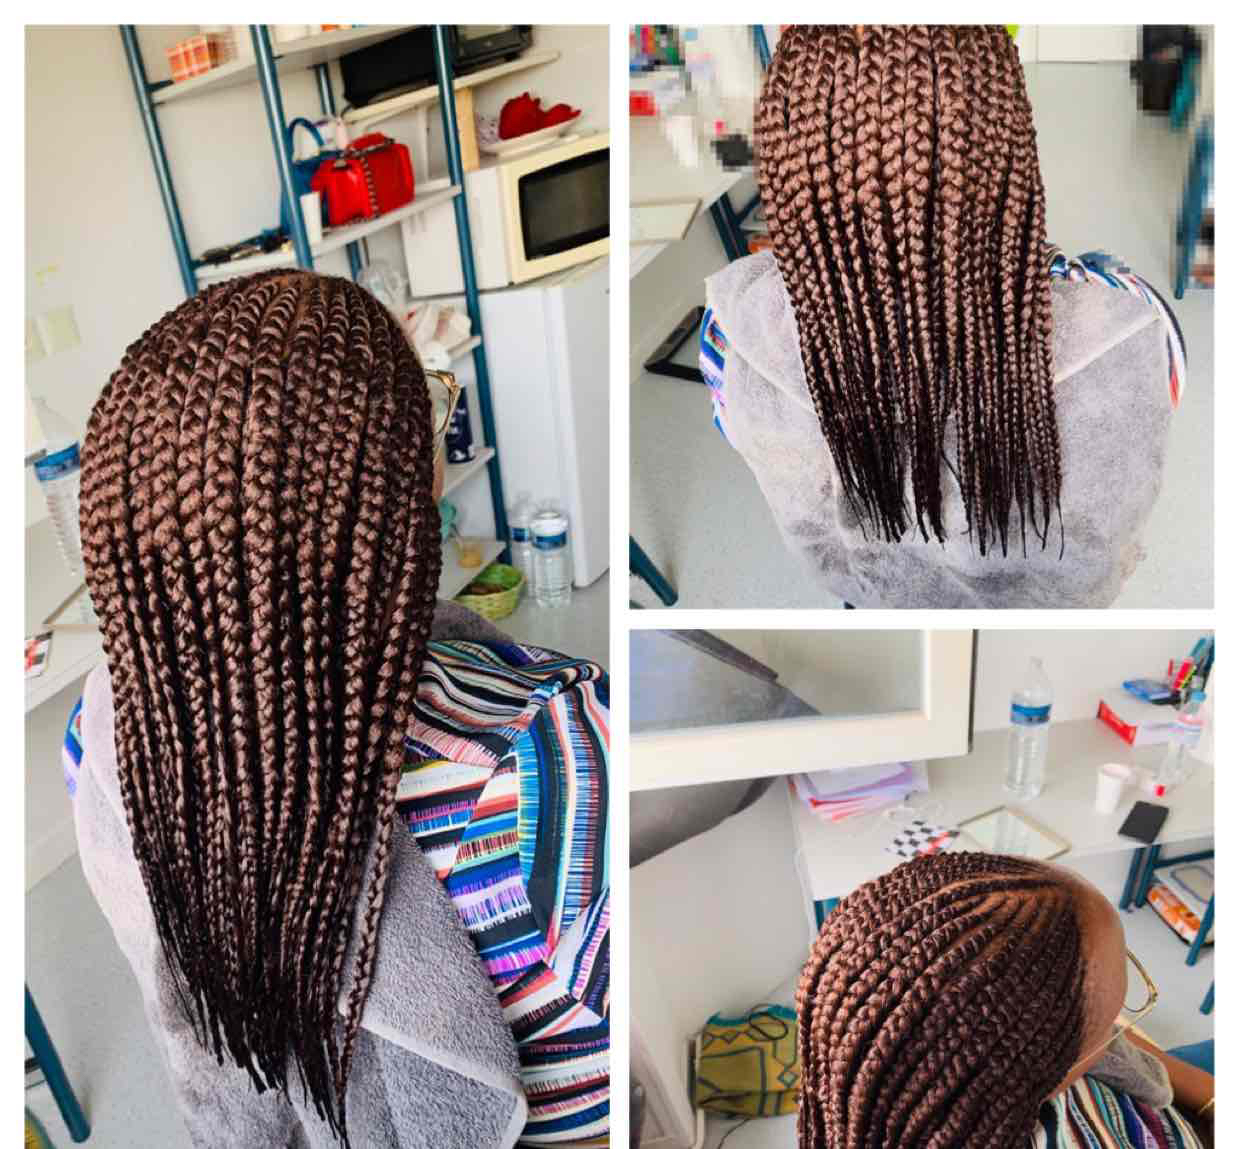 salon de coiffure afro tresse tresses box braids crochet braids vanilles tissages paris 75 77 78 91 92 93 94 95 KYHPLAPH